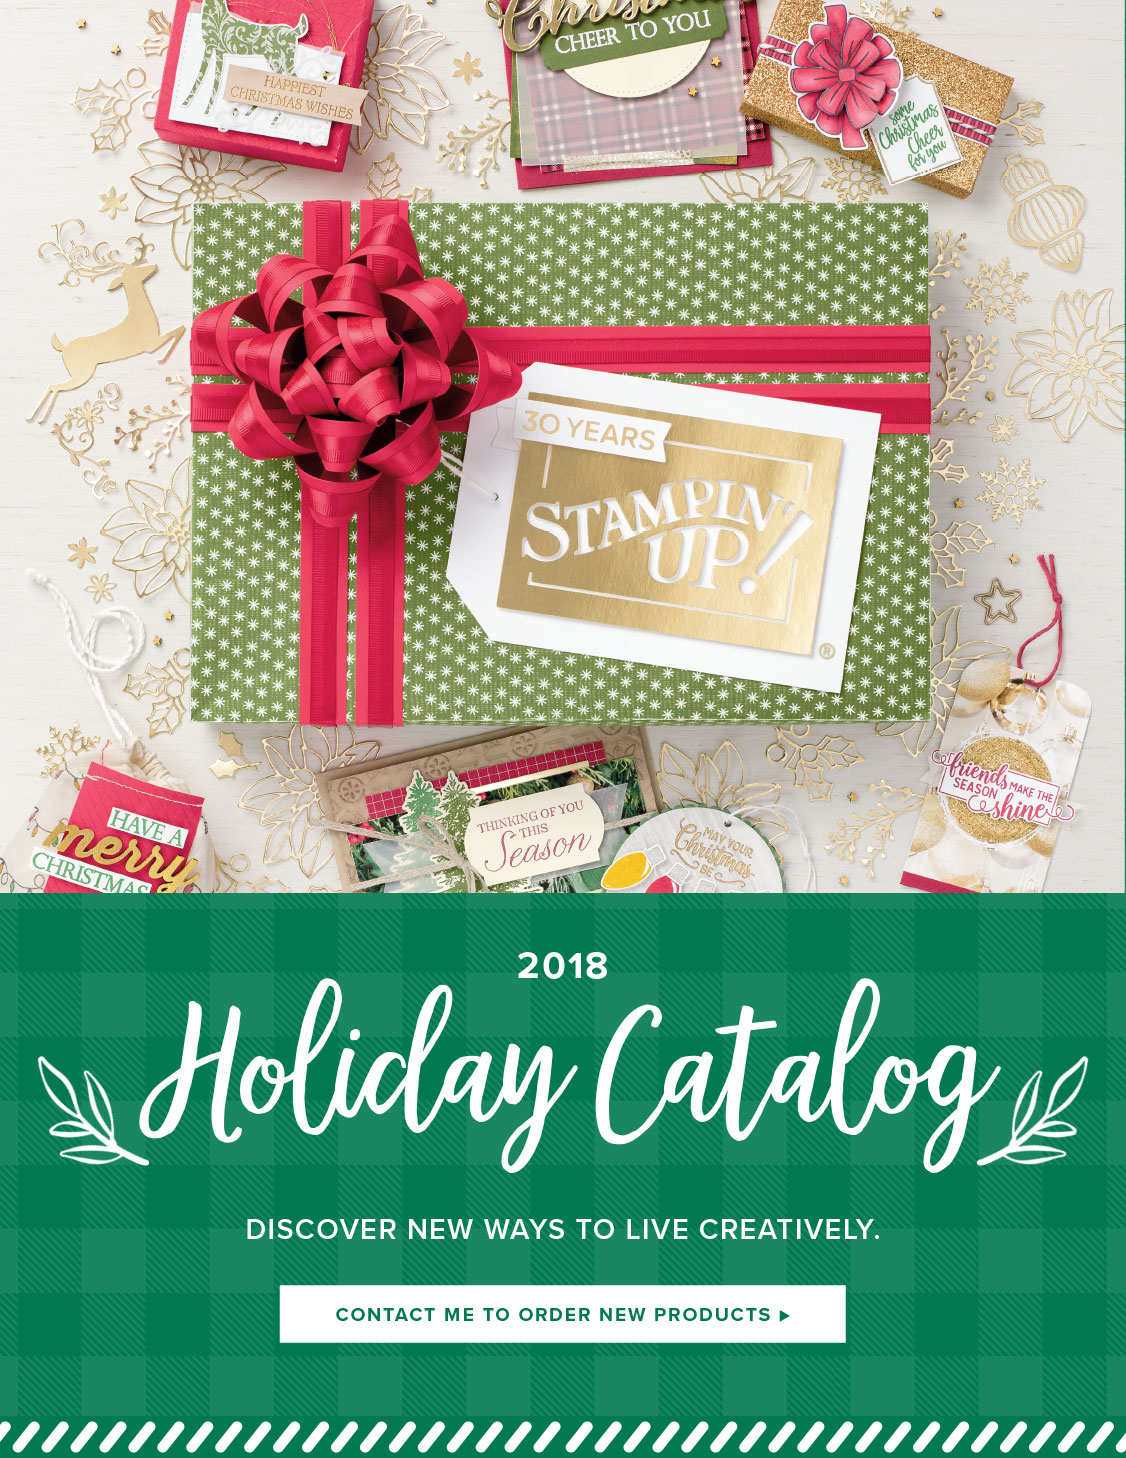 New Holiday Catalog - Don't Wait Until September 5 to Order!